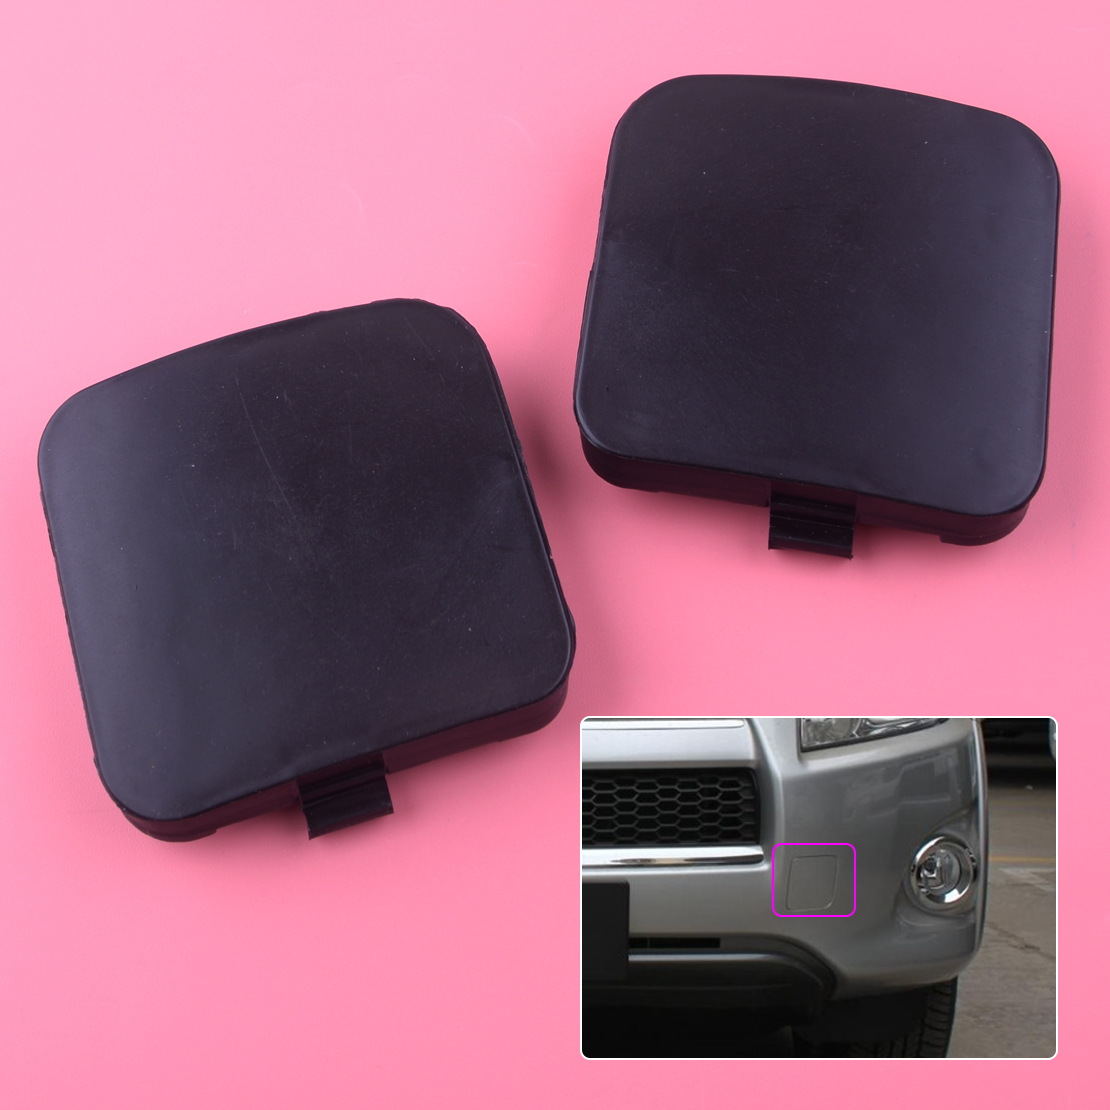 2pcs Front Left /& Right Car Bumper Trailer Tow Hook Eye Covers Caps 53286-0R020 for Toyota RAV4 2009 2010 2011 2012